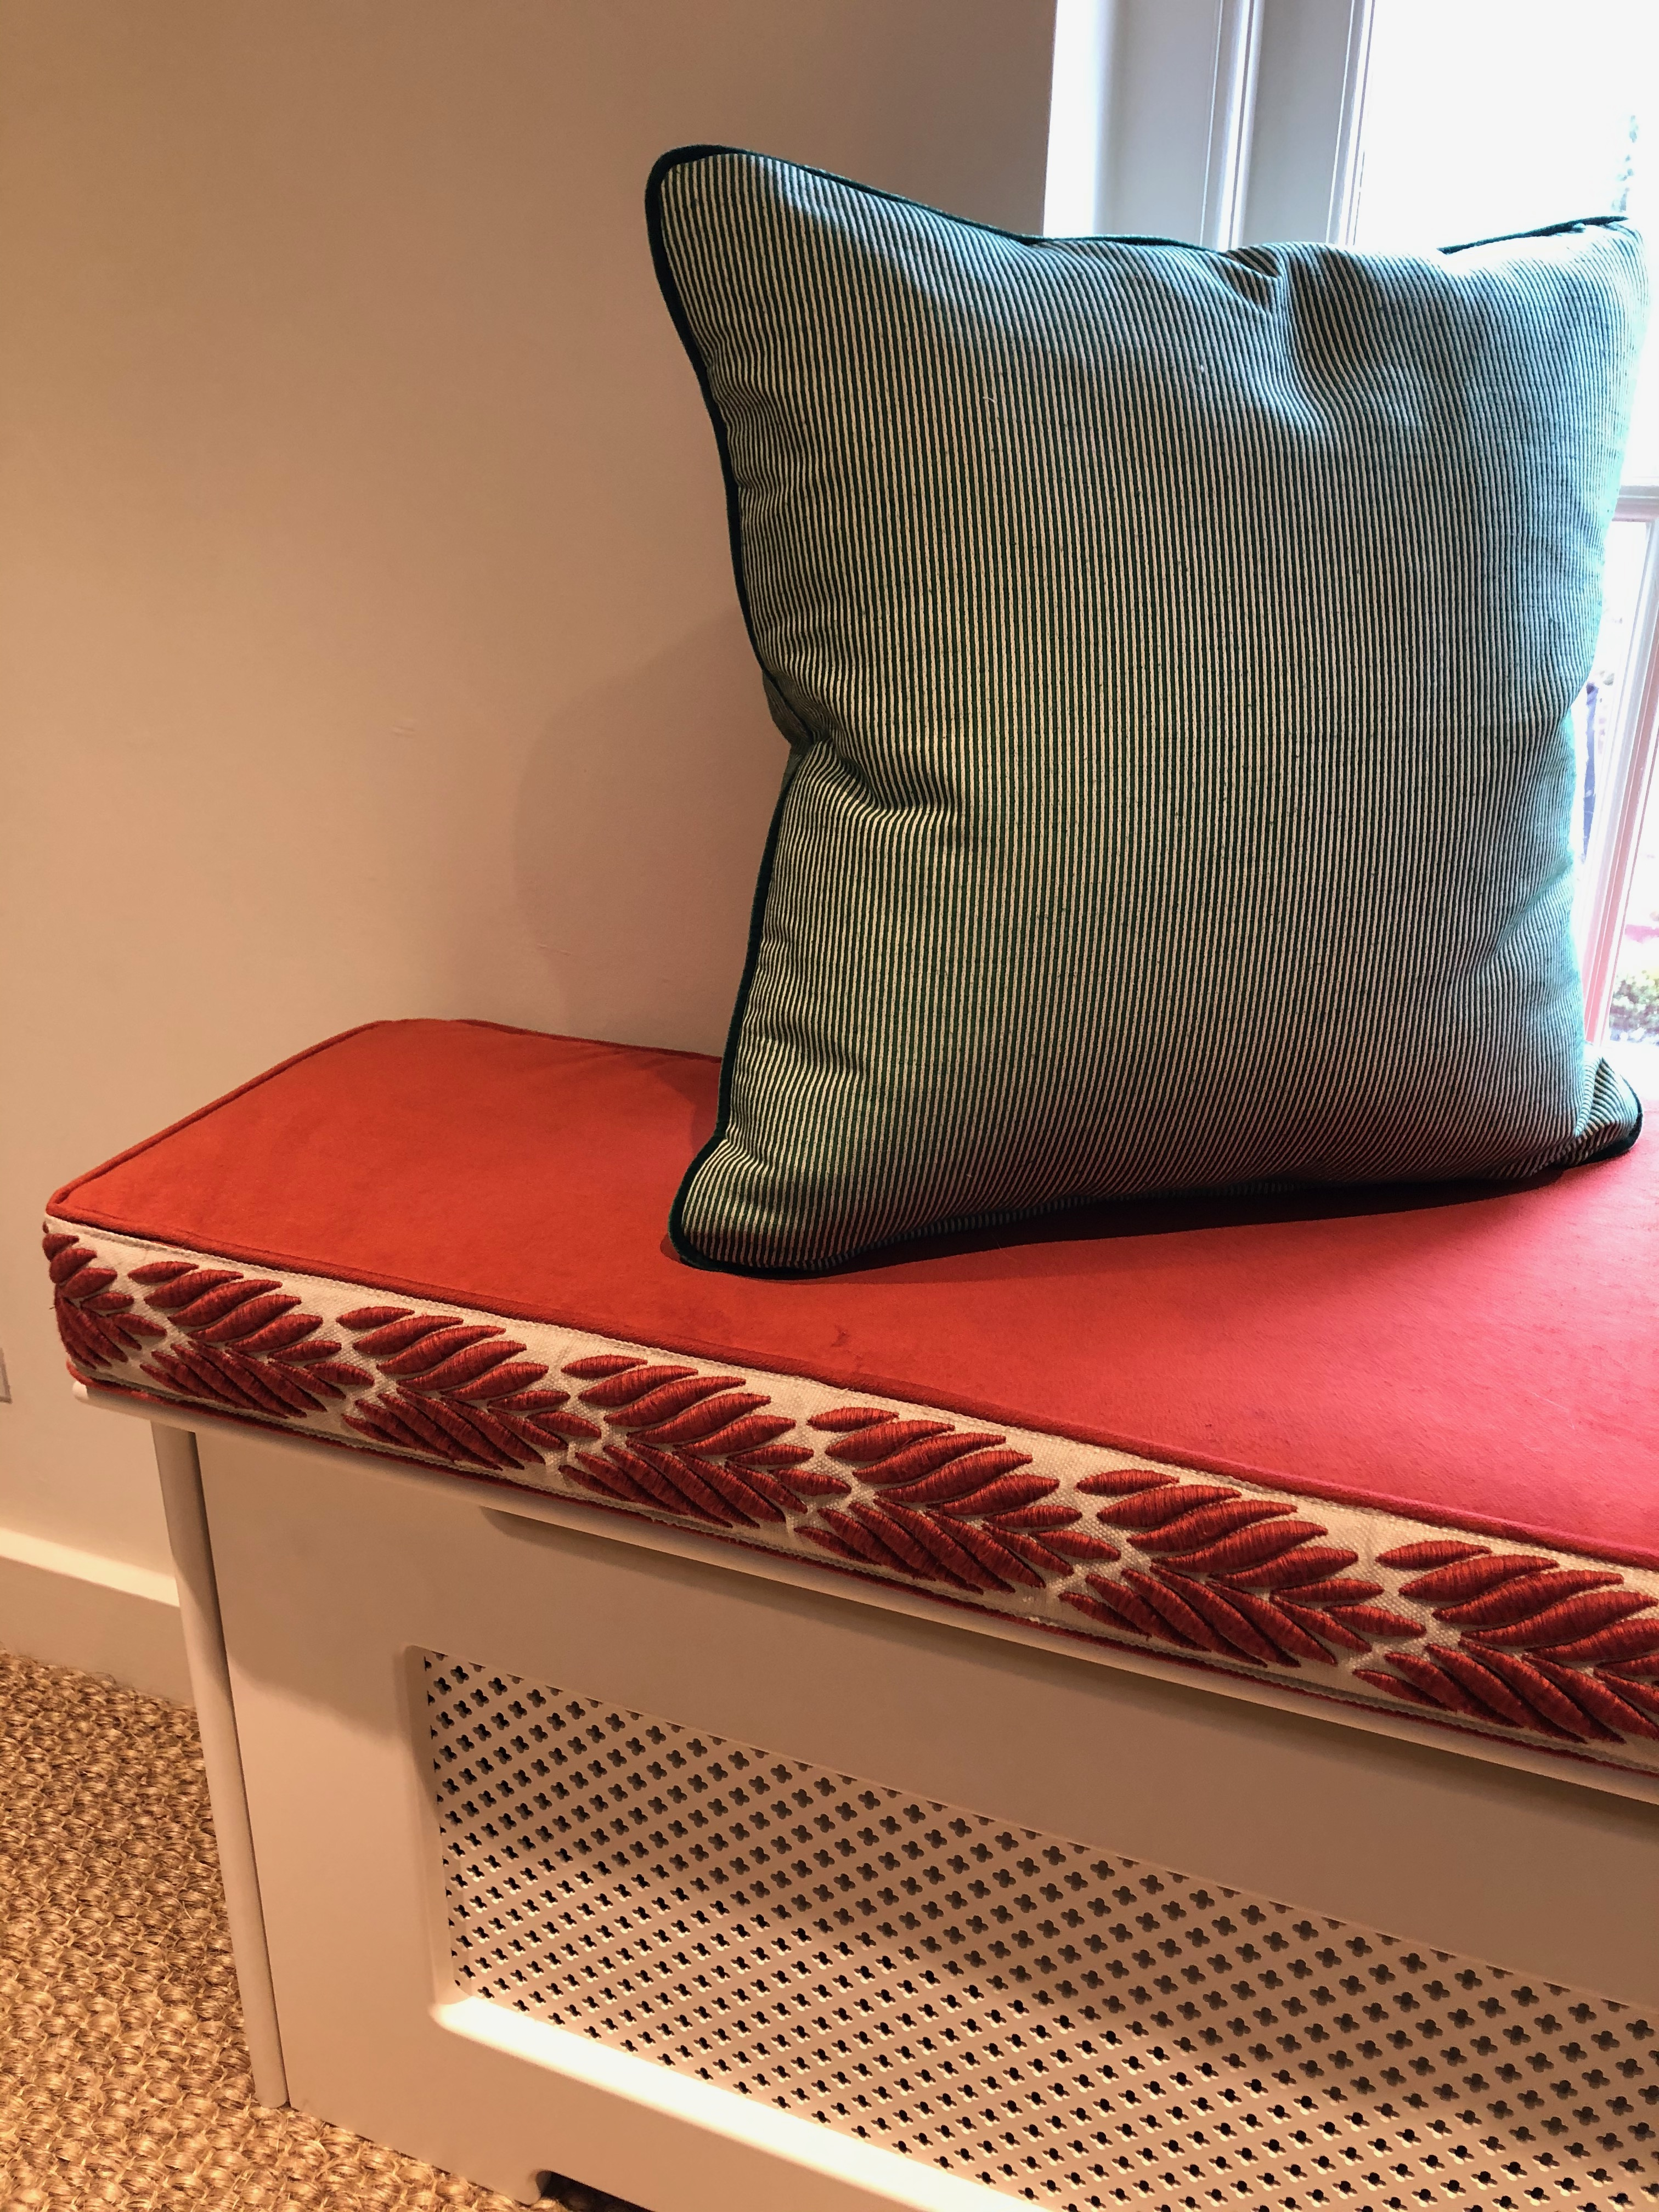 Radiator Cover Seatpad